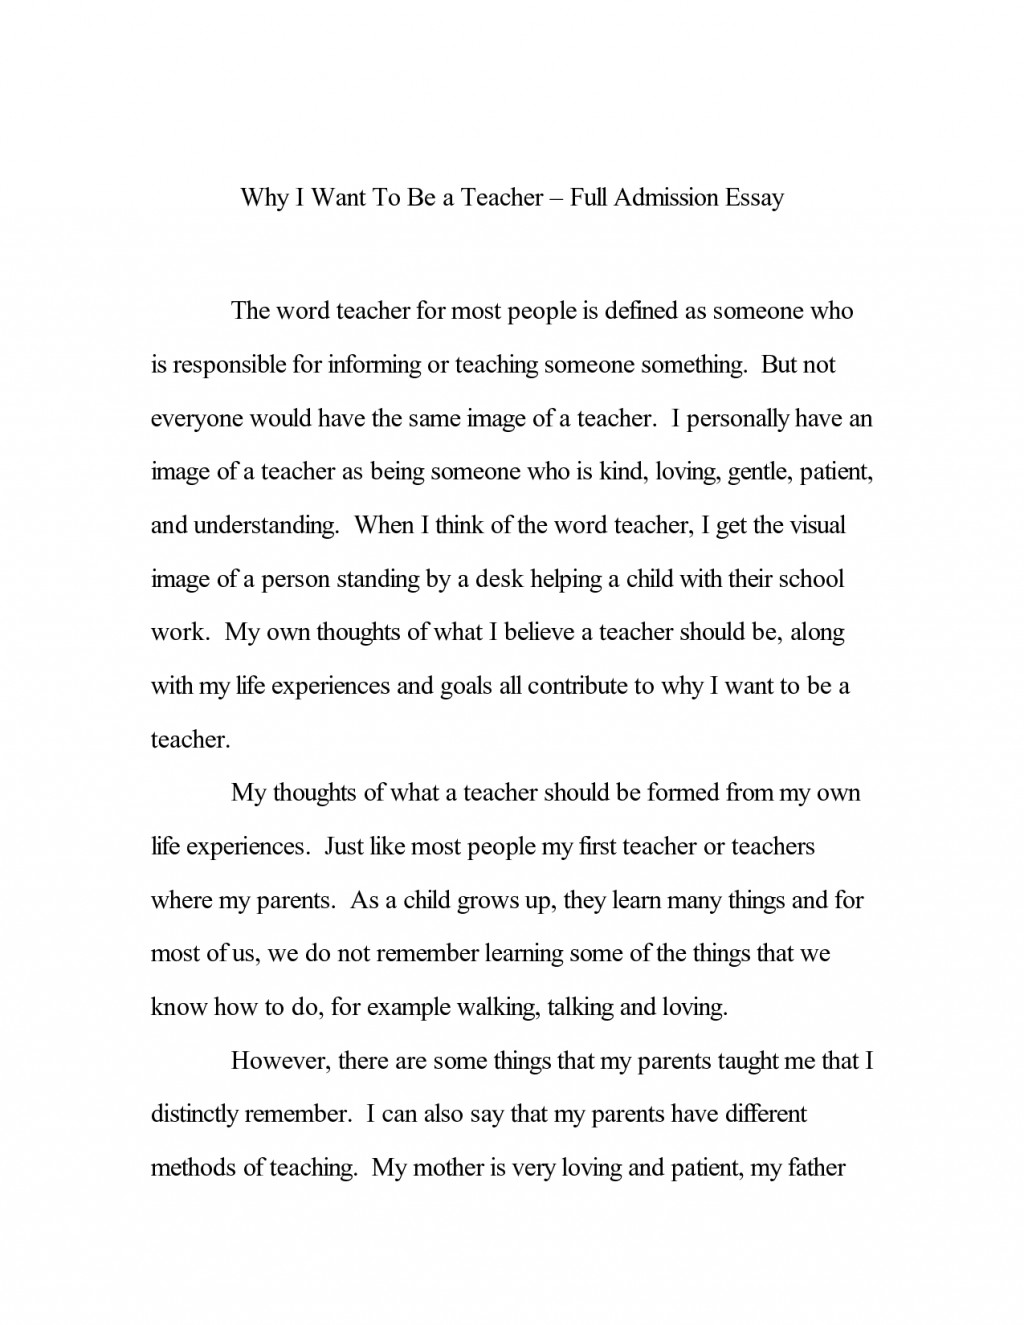 003 College App Essays Breathtaking Essay Examples Admission Sample Pdf 300 Words Application 250 Large